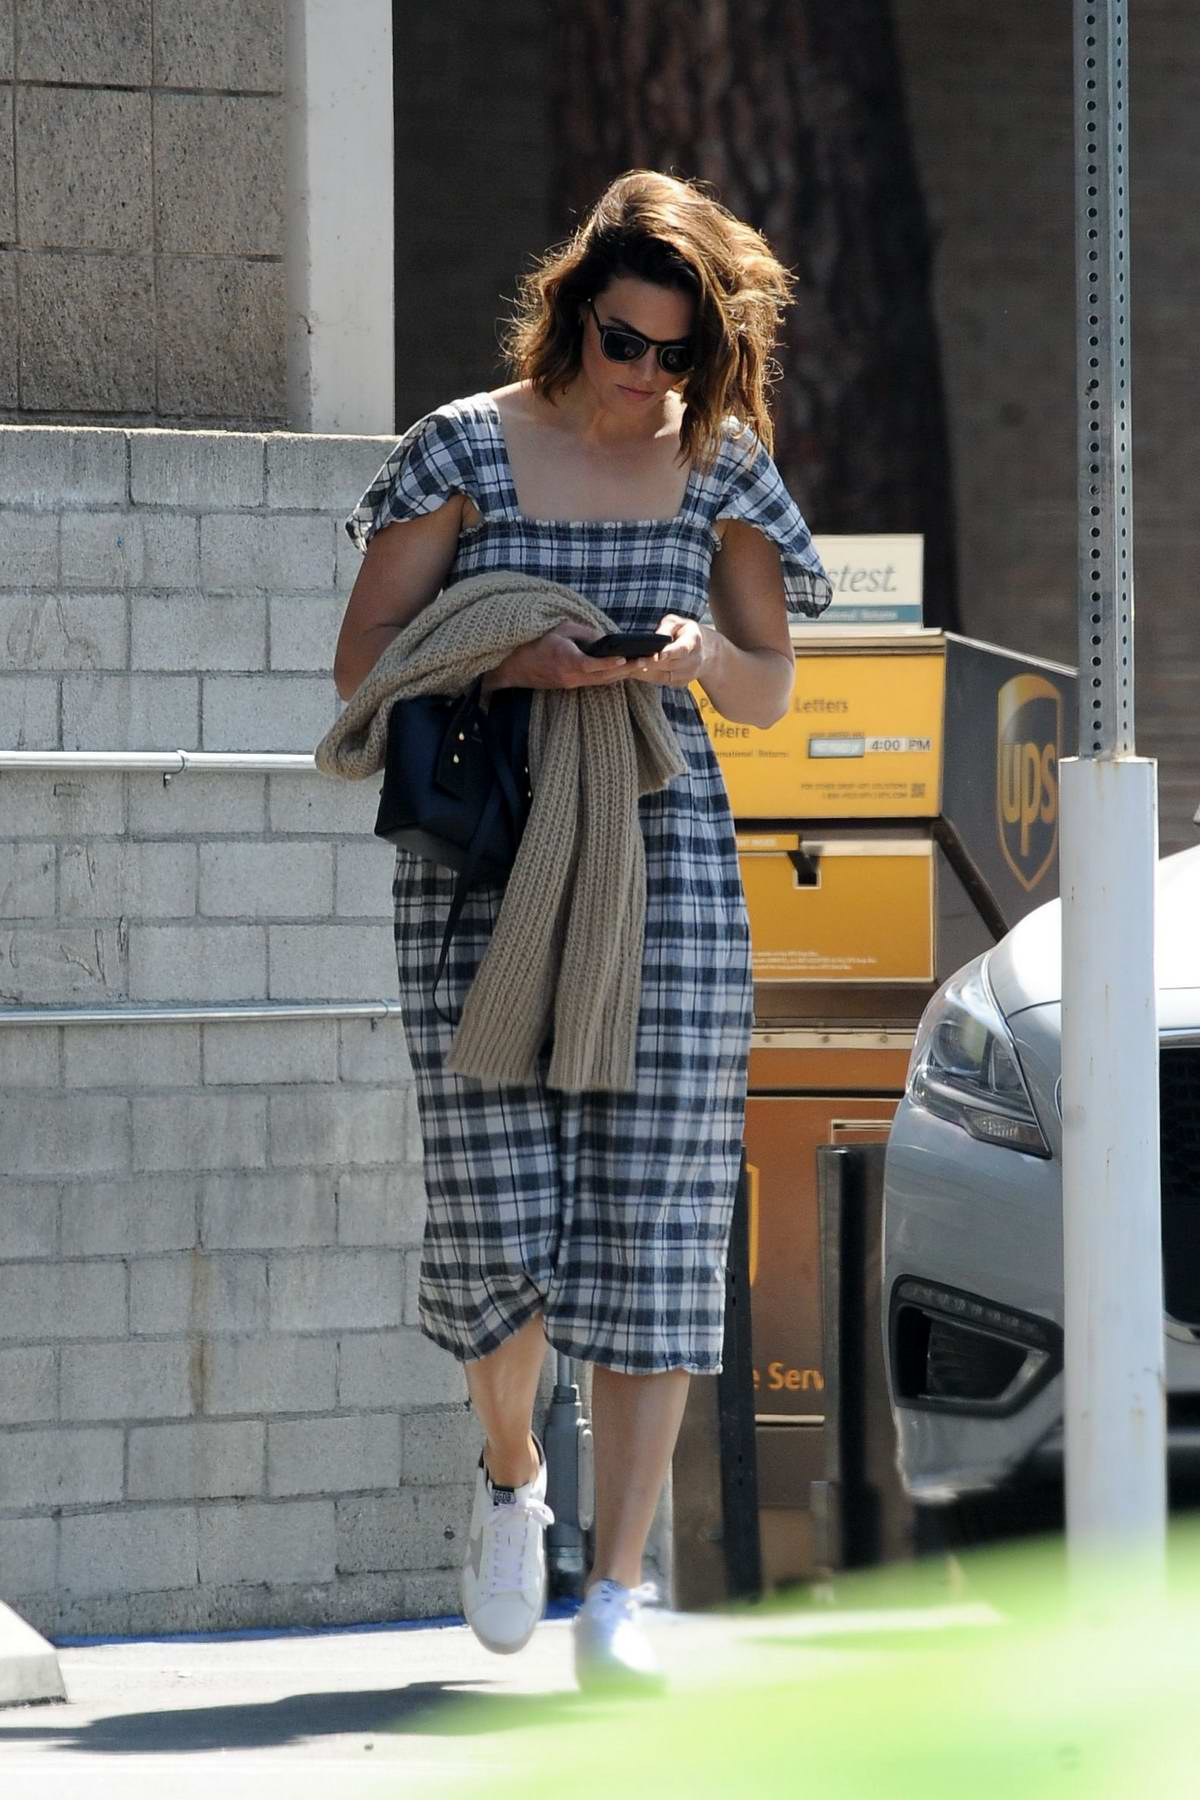 Mandy Moore dons a plaid dress and Golden Goose sneakers for a solo outing in Los Angeles